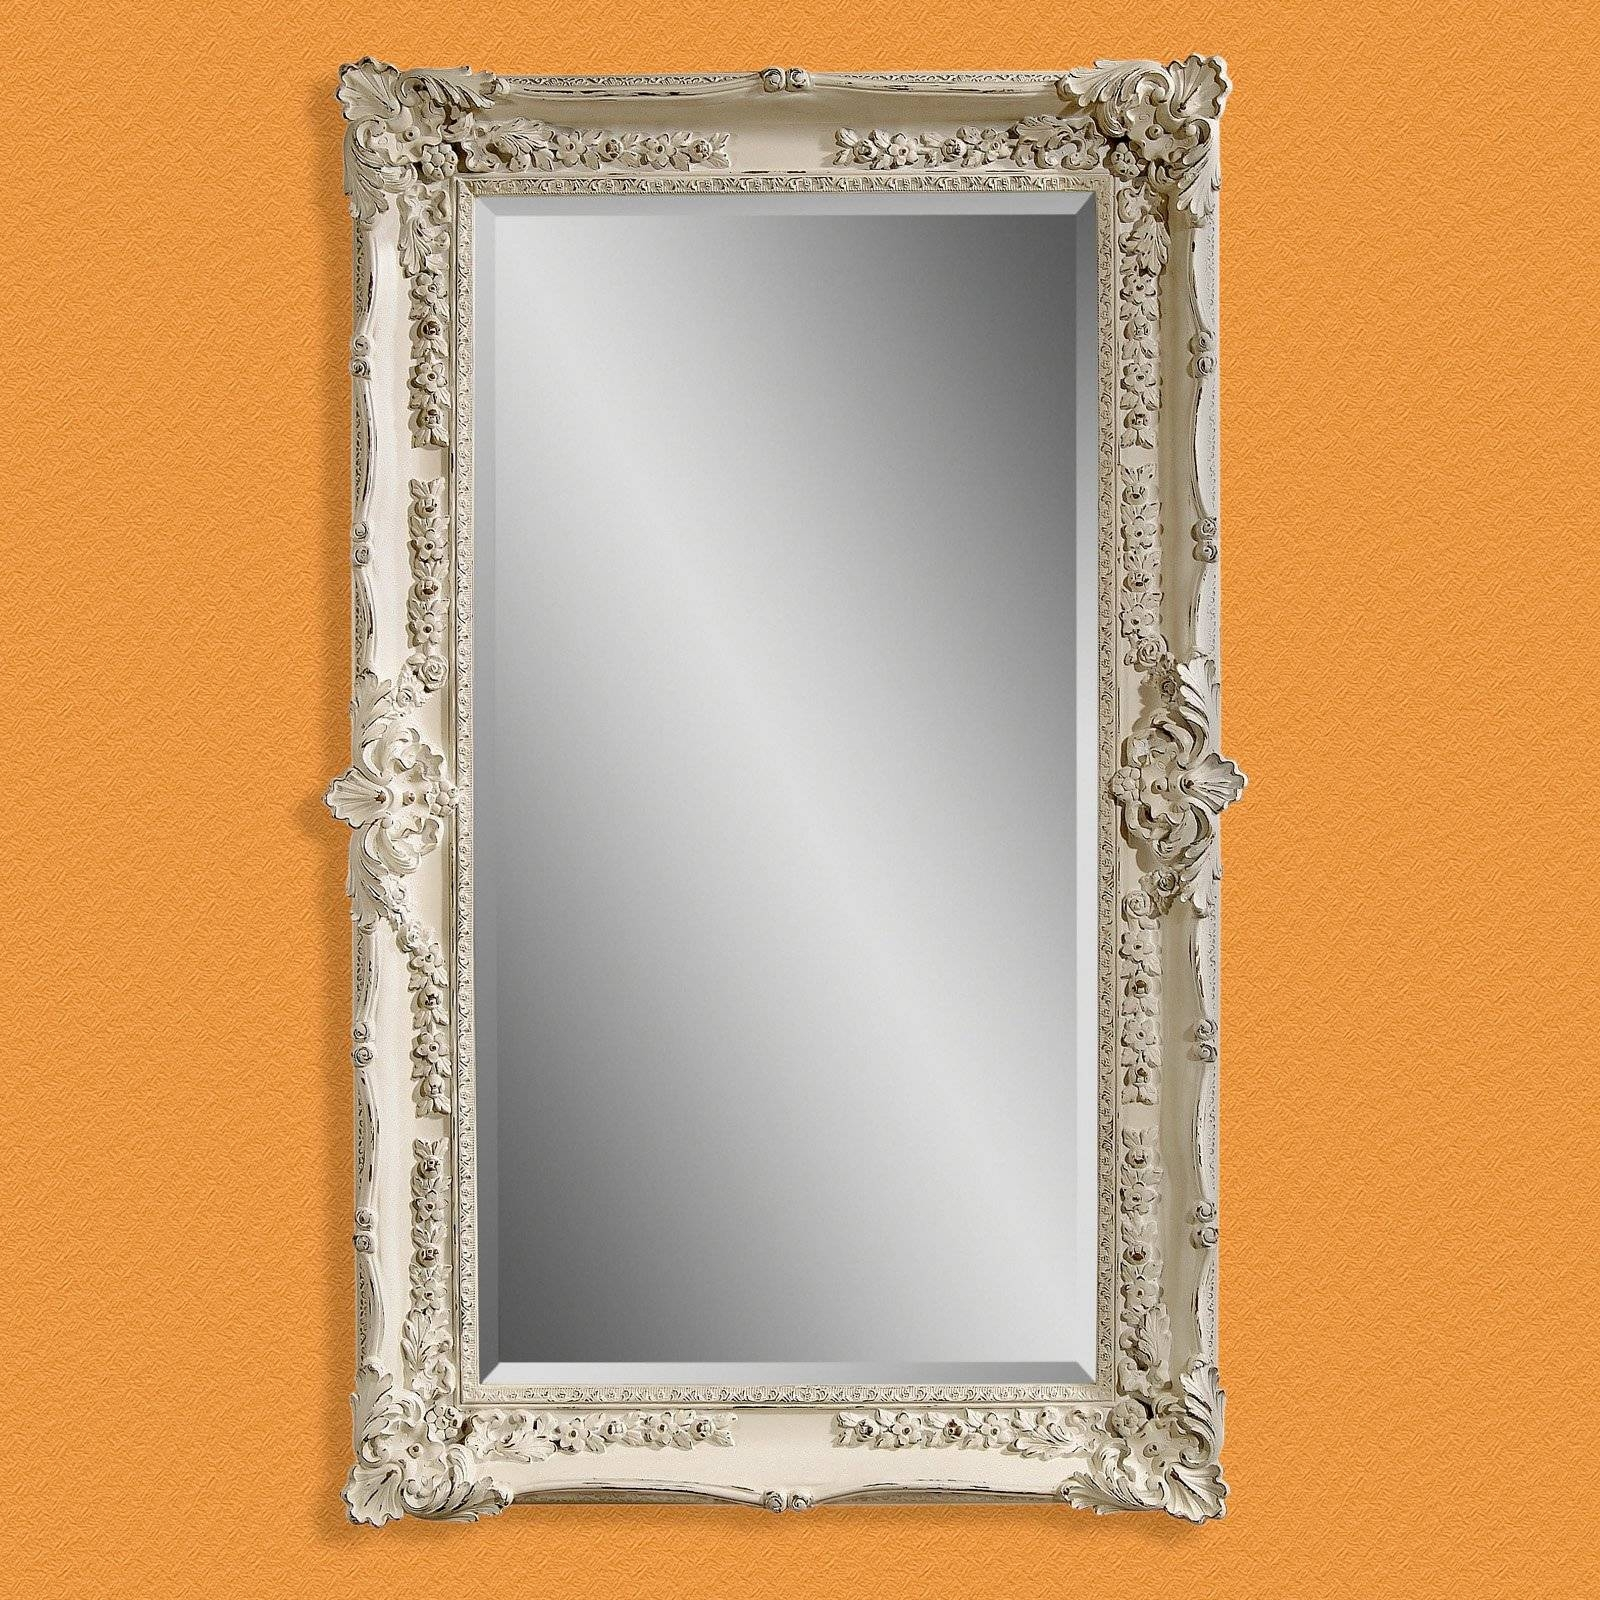 Antique White Wall / Leaning Floor Mirror - 43W X 69H In. | Hayneedle for Antiqued Wall Mirrors (Image 8 of 25)